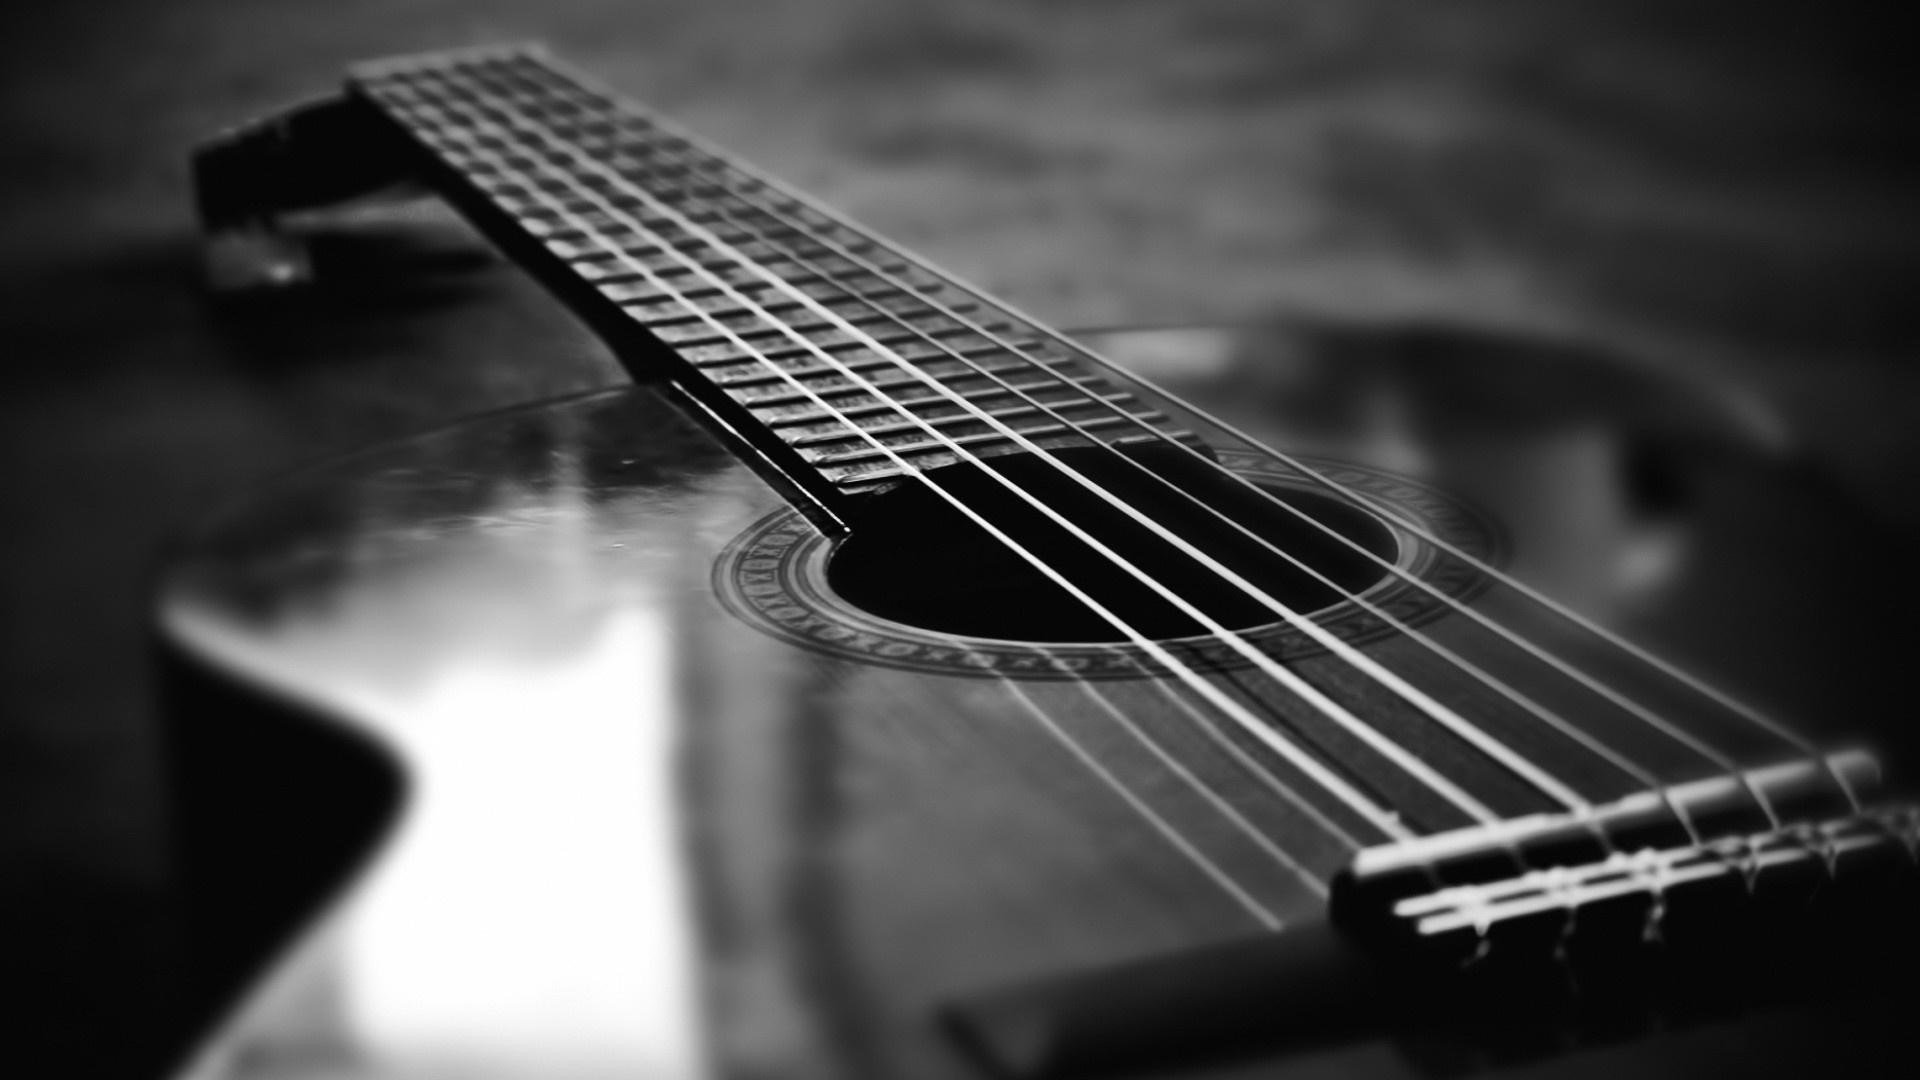 1920x1080  Taylor Guitar Wallpaper | HD Wallpapers | Pinterest | Taylor  guitars, Hd wallpaper and Wallpaper